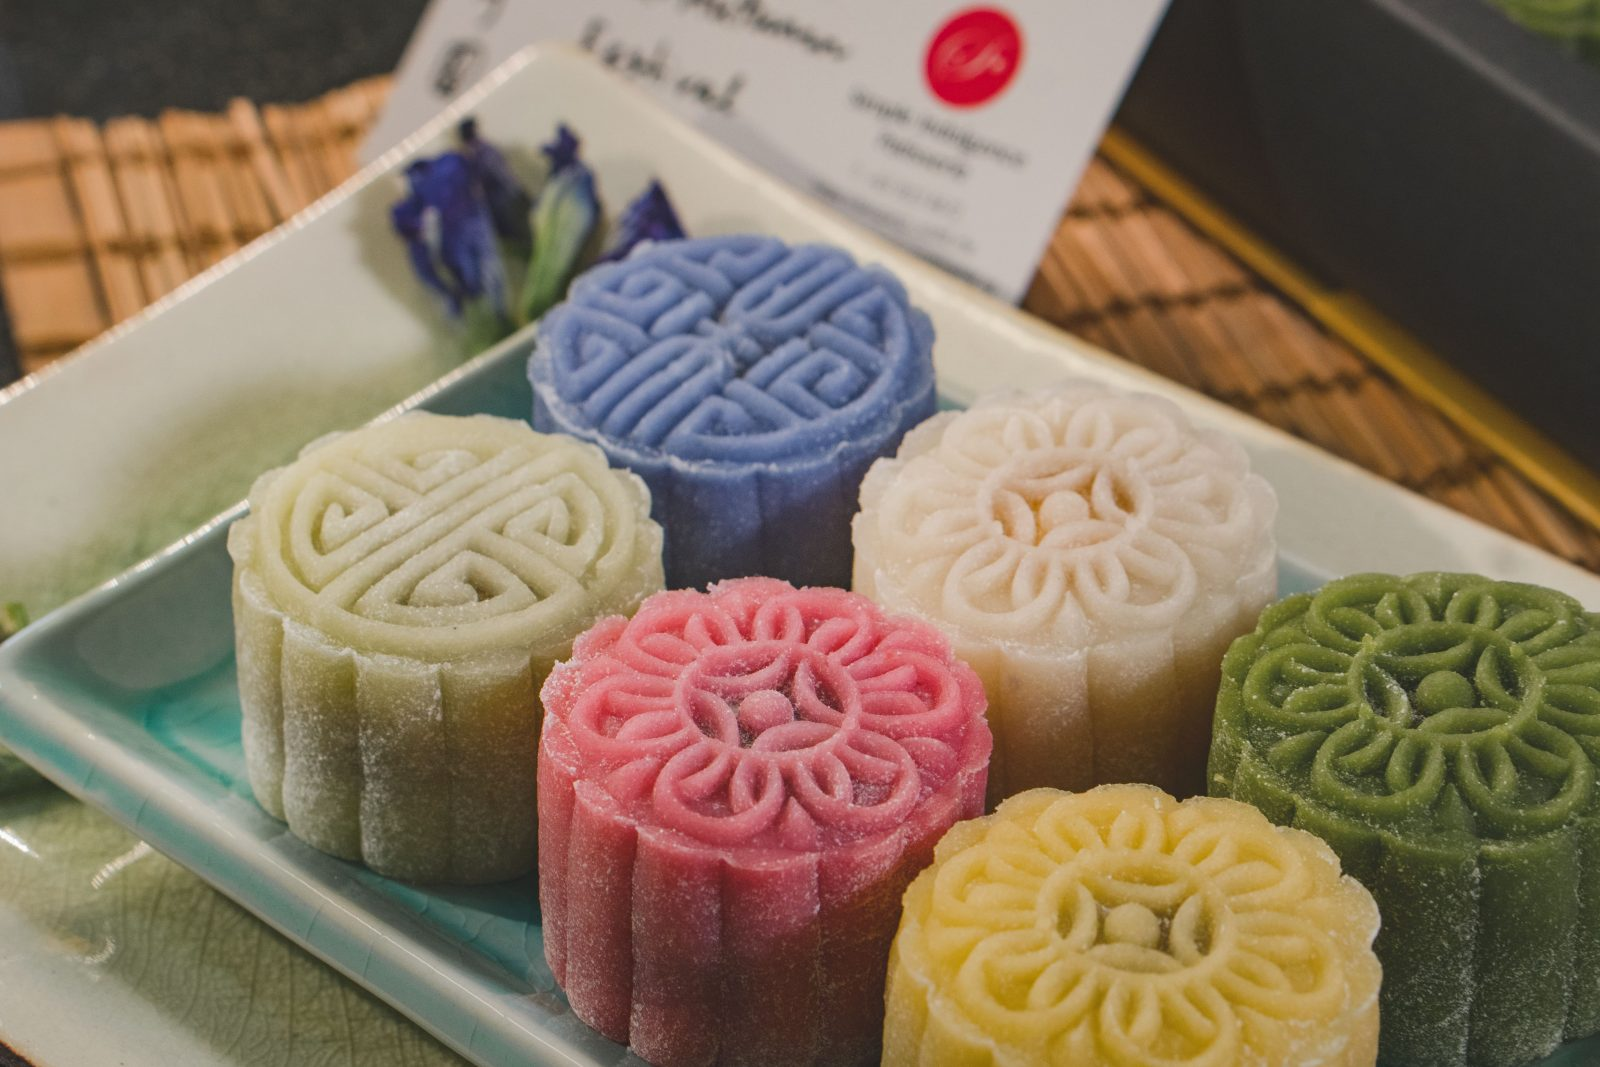 Simple Indulgence Patisserie's mooncakes are freshly made every morning using 100% real food and real flavours, free of preservatives and artificial ingredients